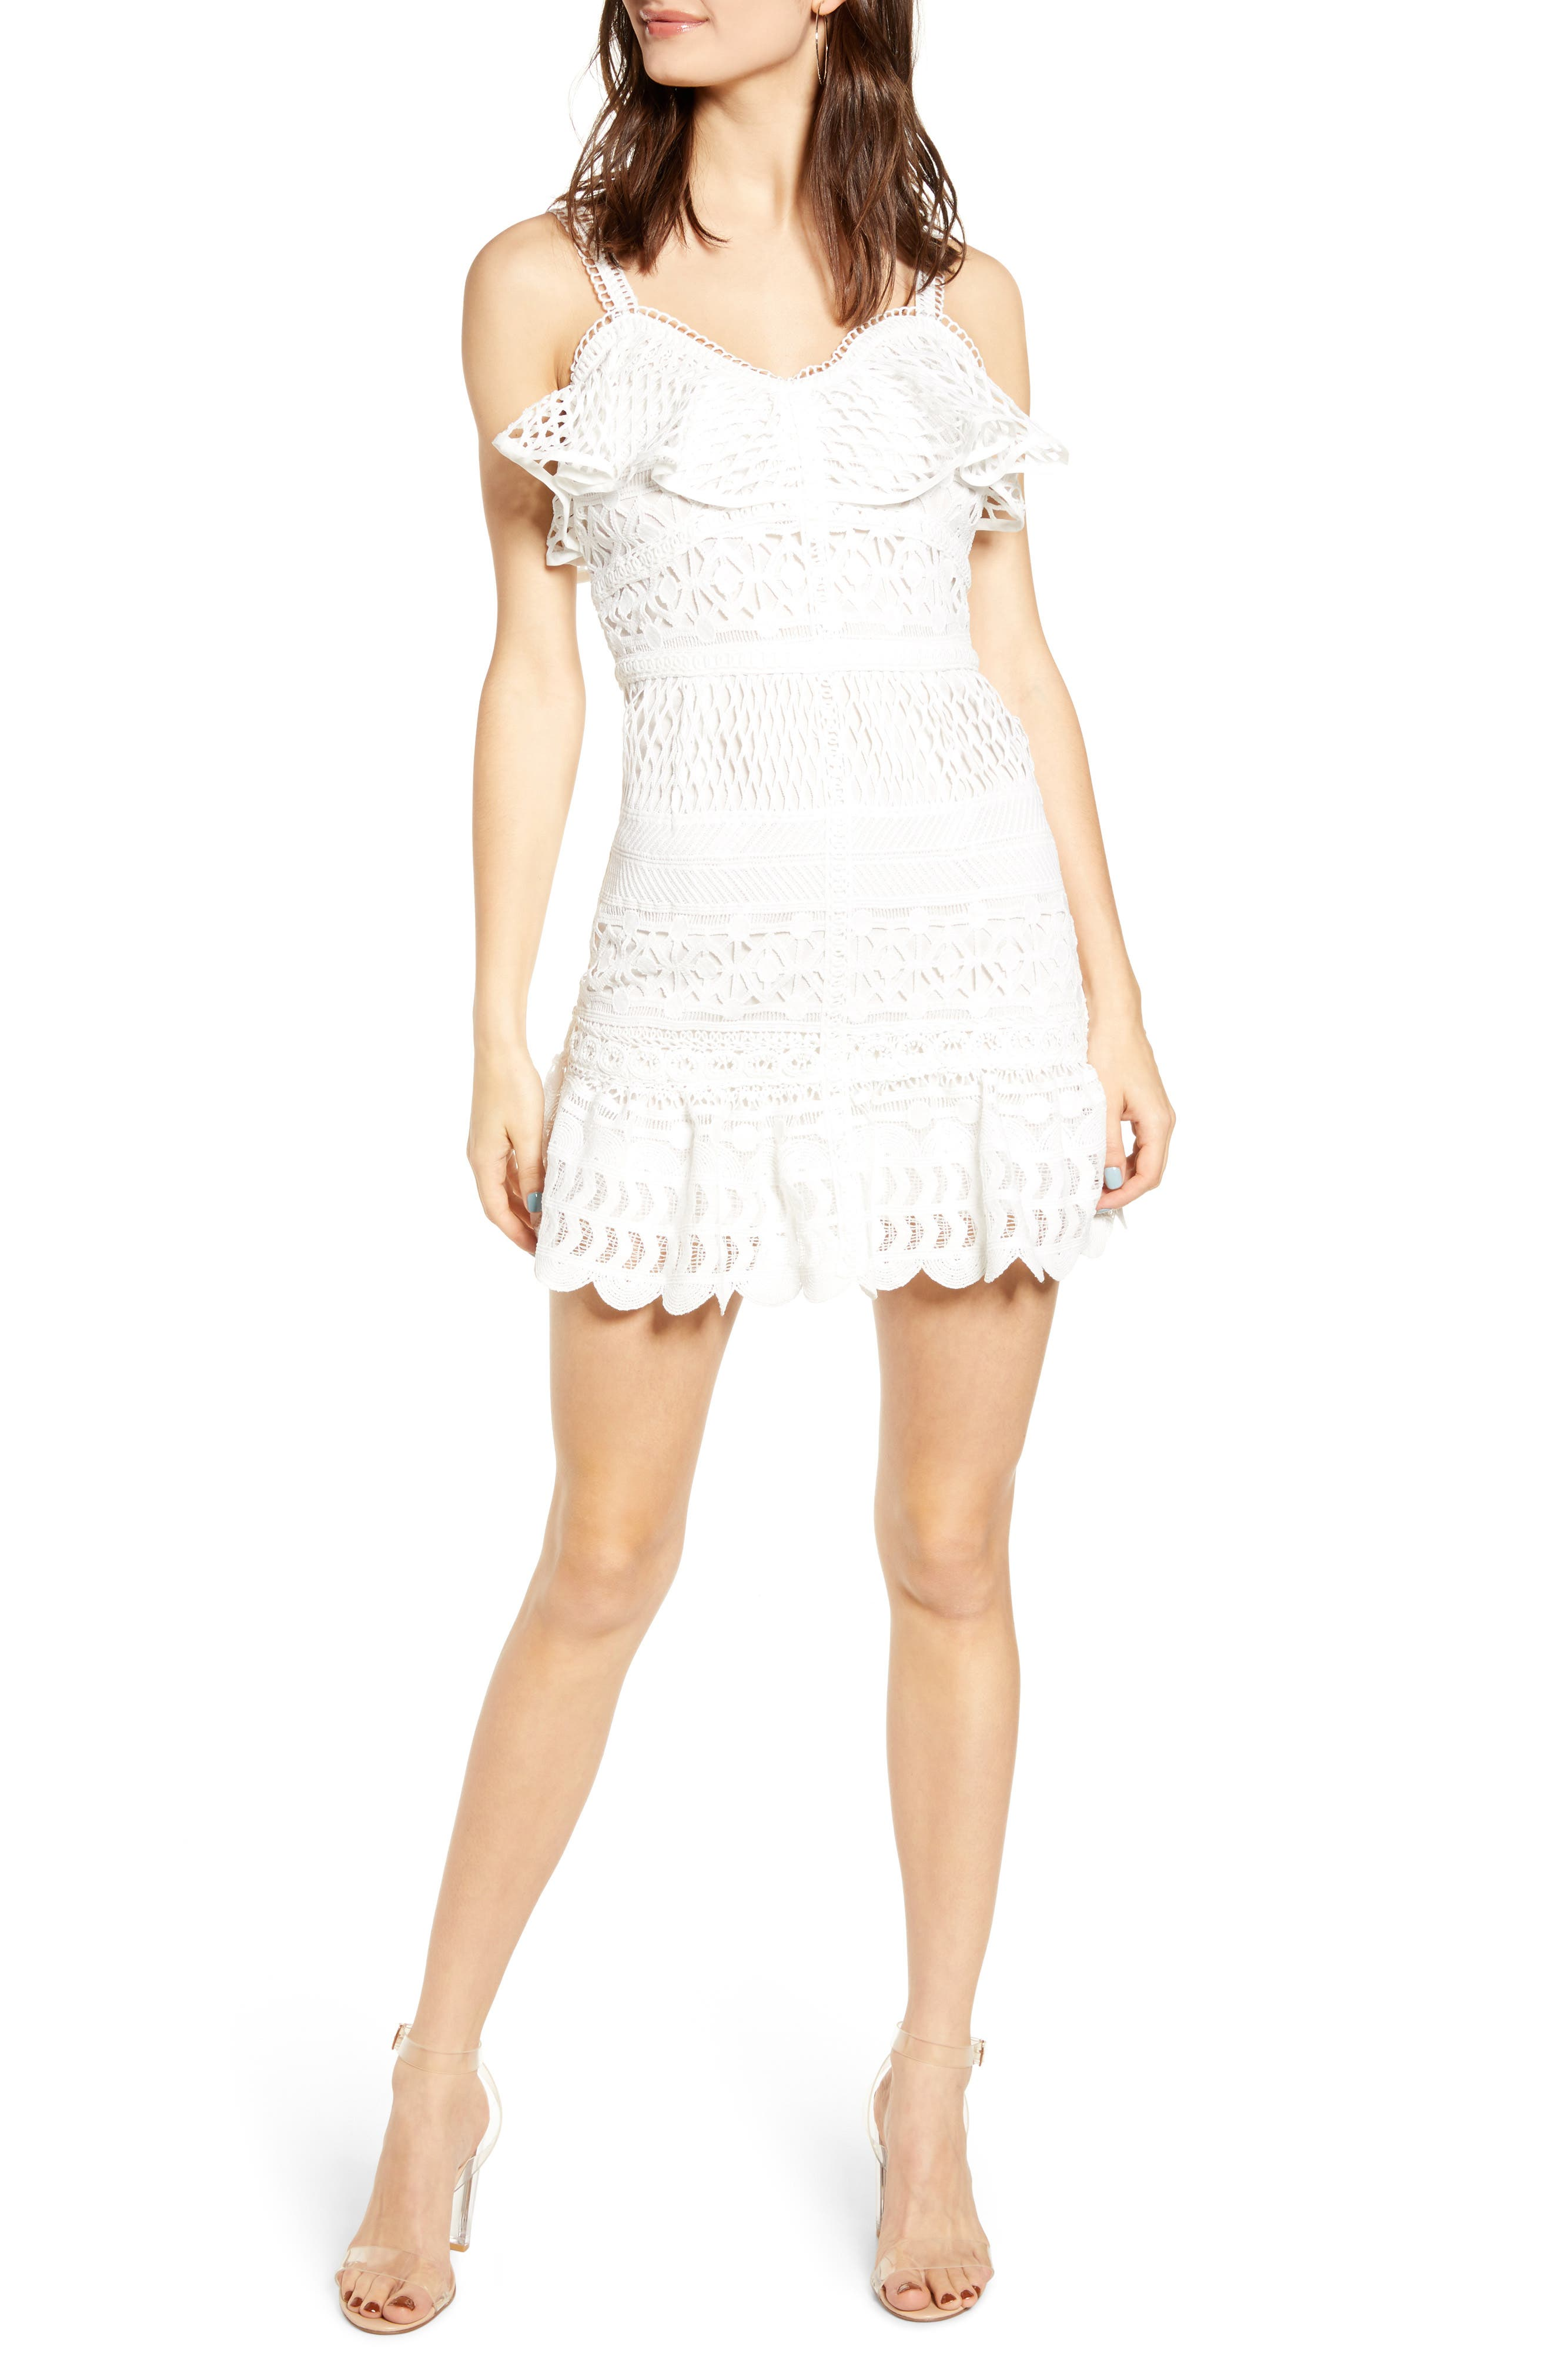 J.o.a. Lace Mix Cotton Sundress, White